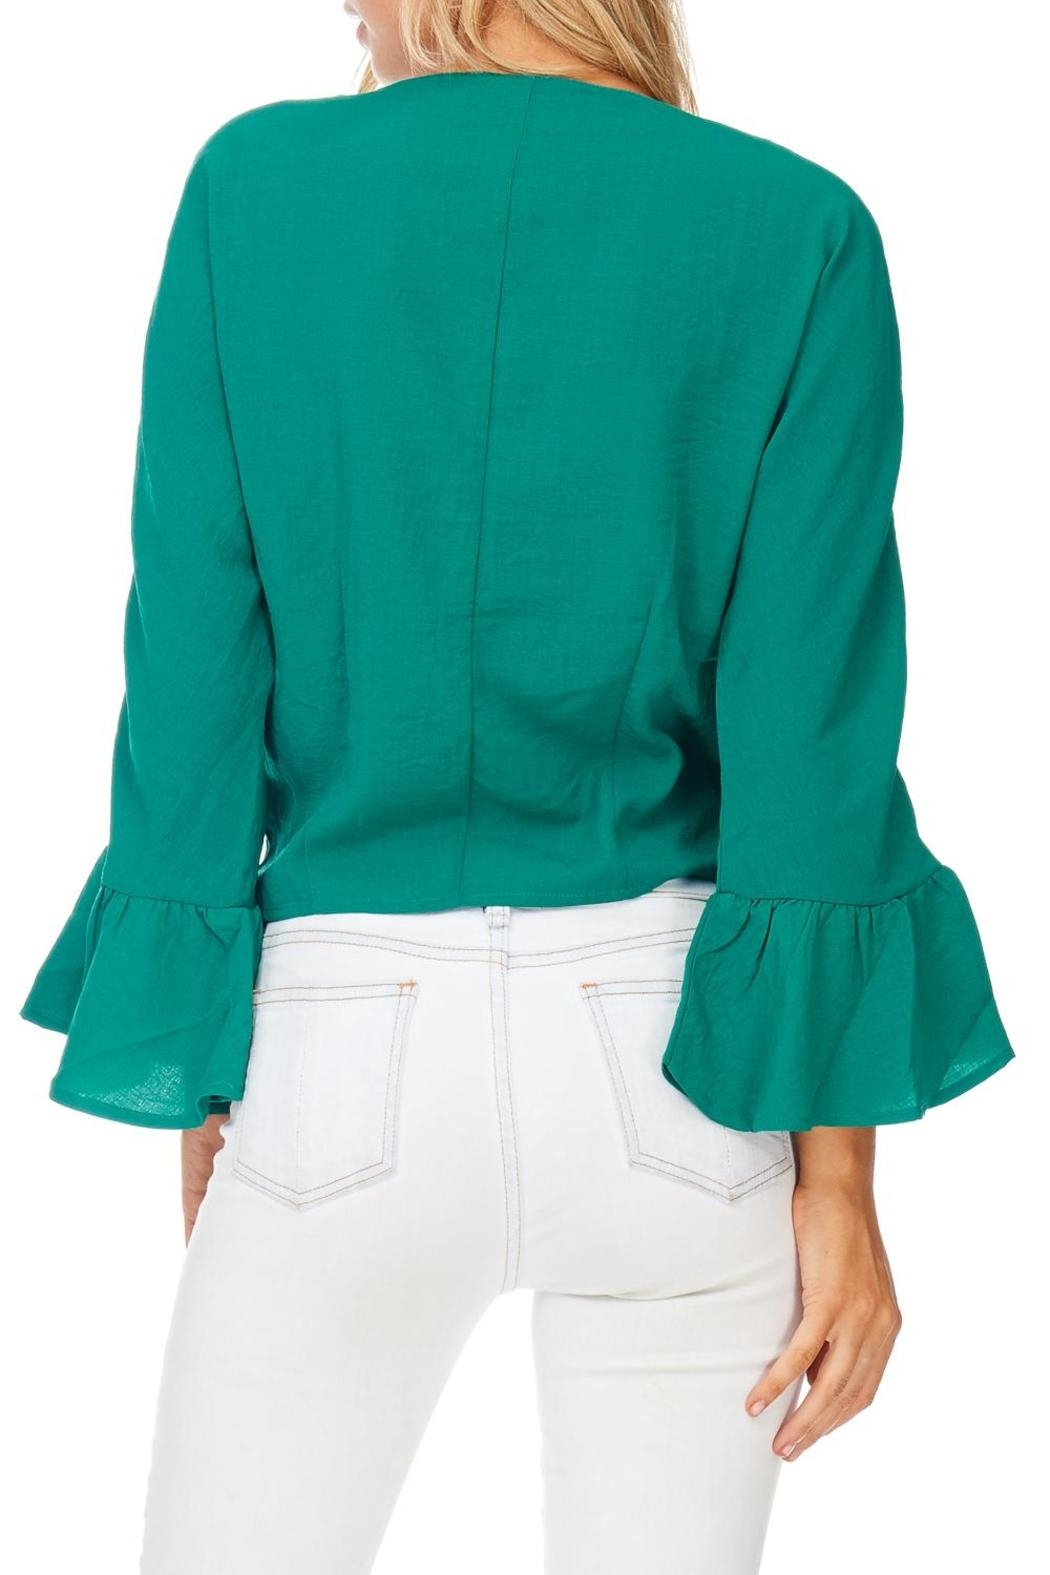 Miss Love Green Front Tie Blouse - Back Cropped Image